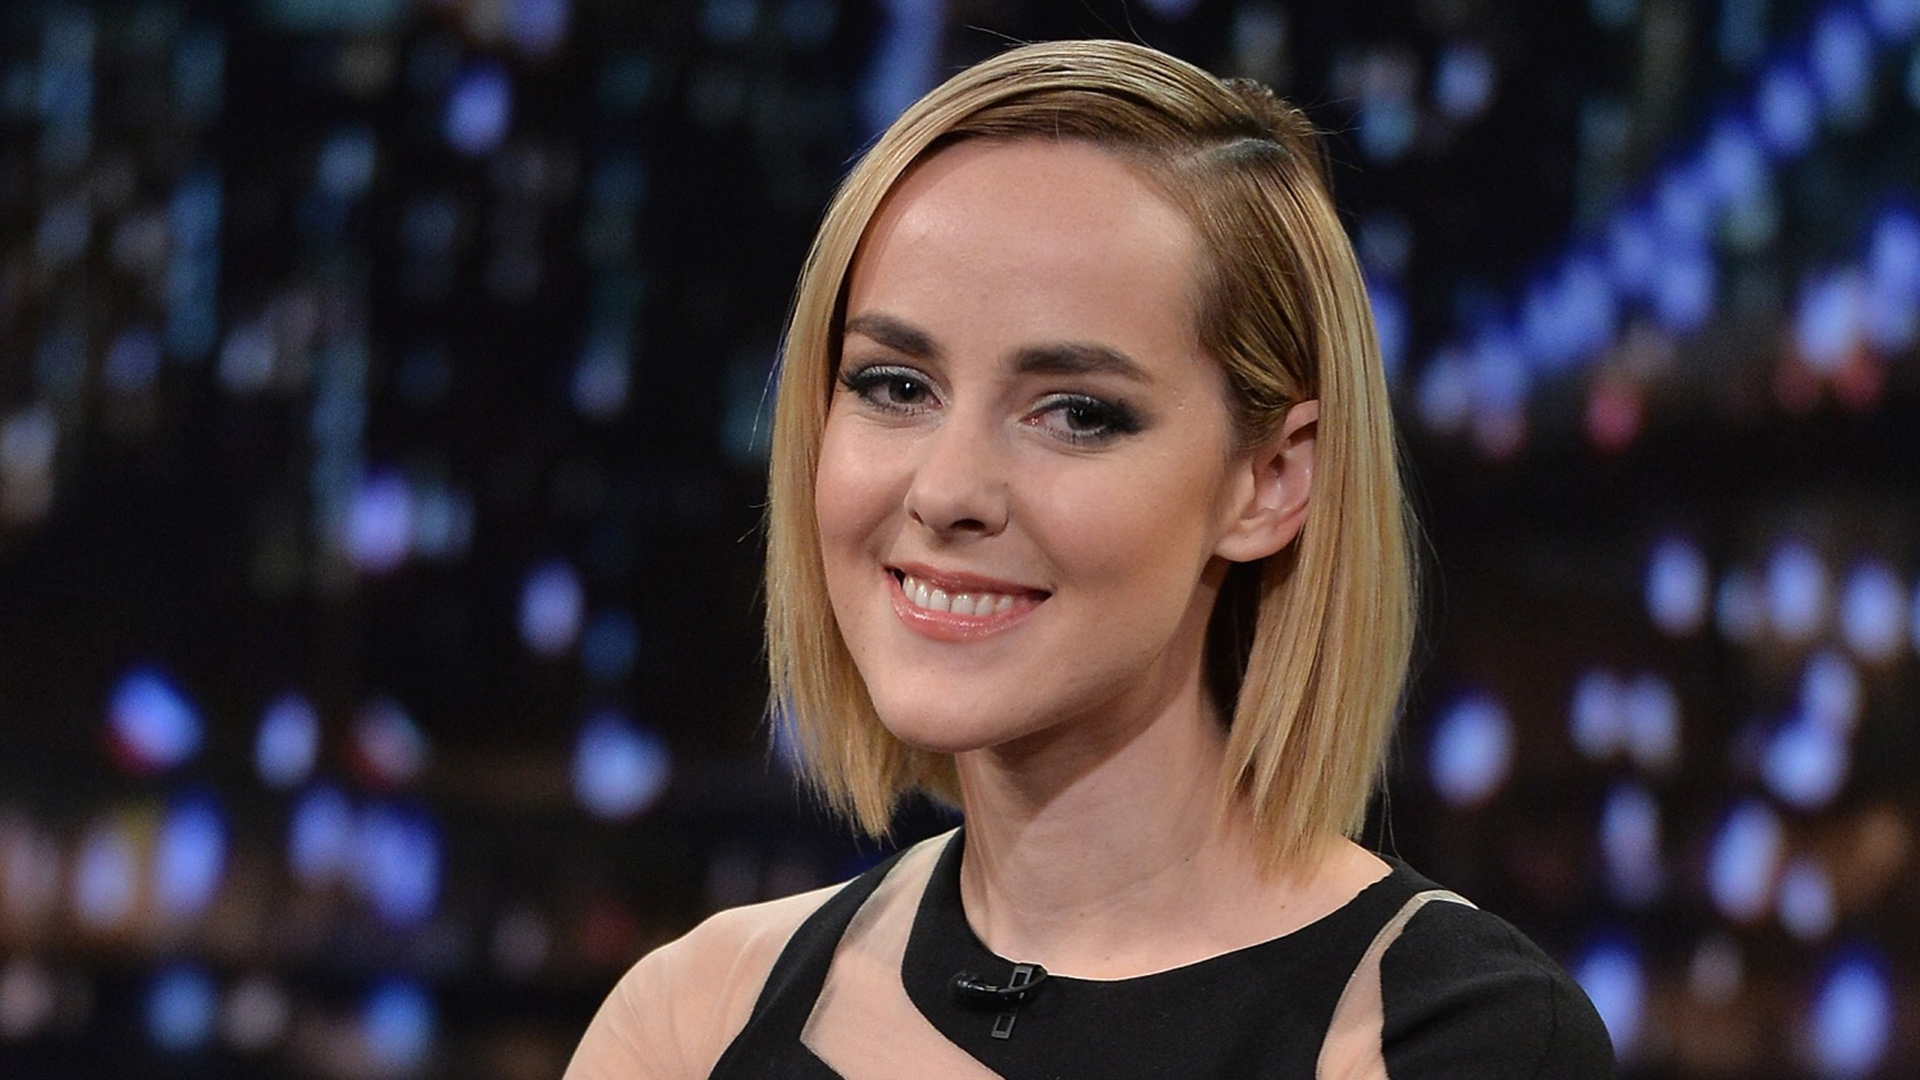 All Anime In One Wallpaper Jena Malone Hd Wallpapers Free Download